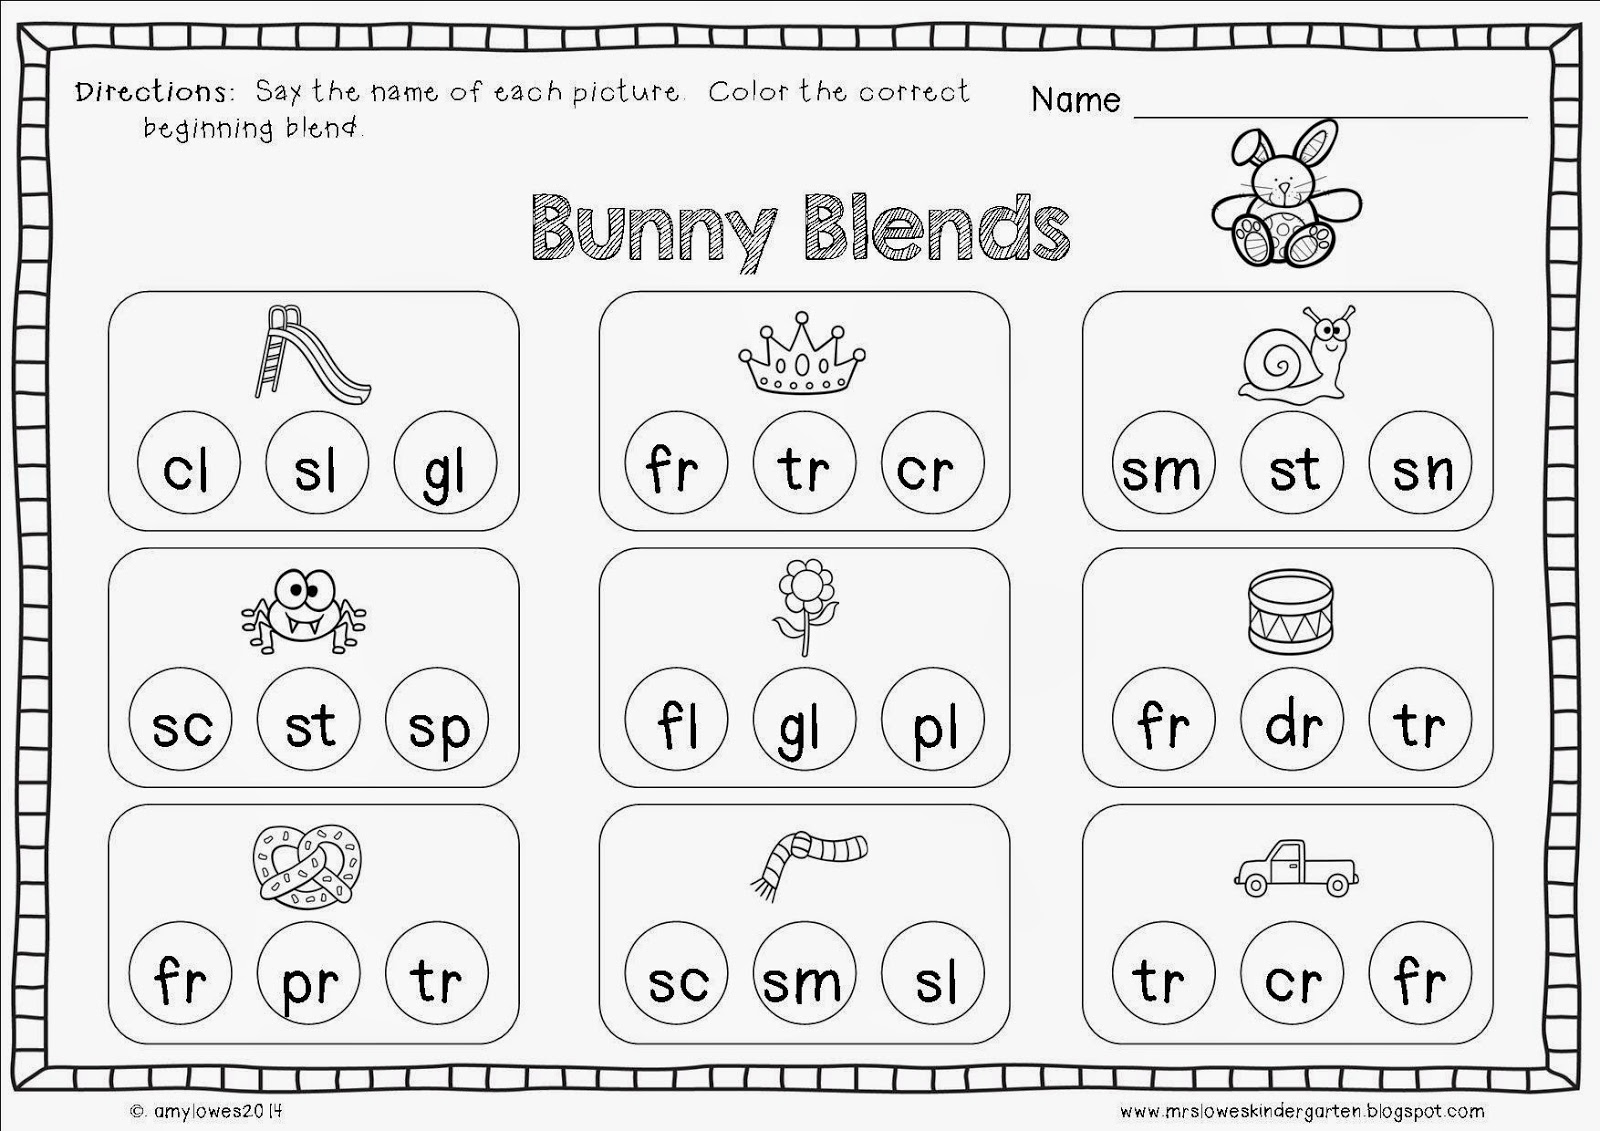 Mrs Lowes Kindergarten Korner No Prep Easter Math And Literacy Printables Giveaway With A